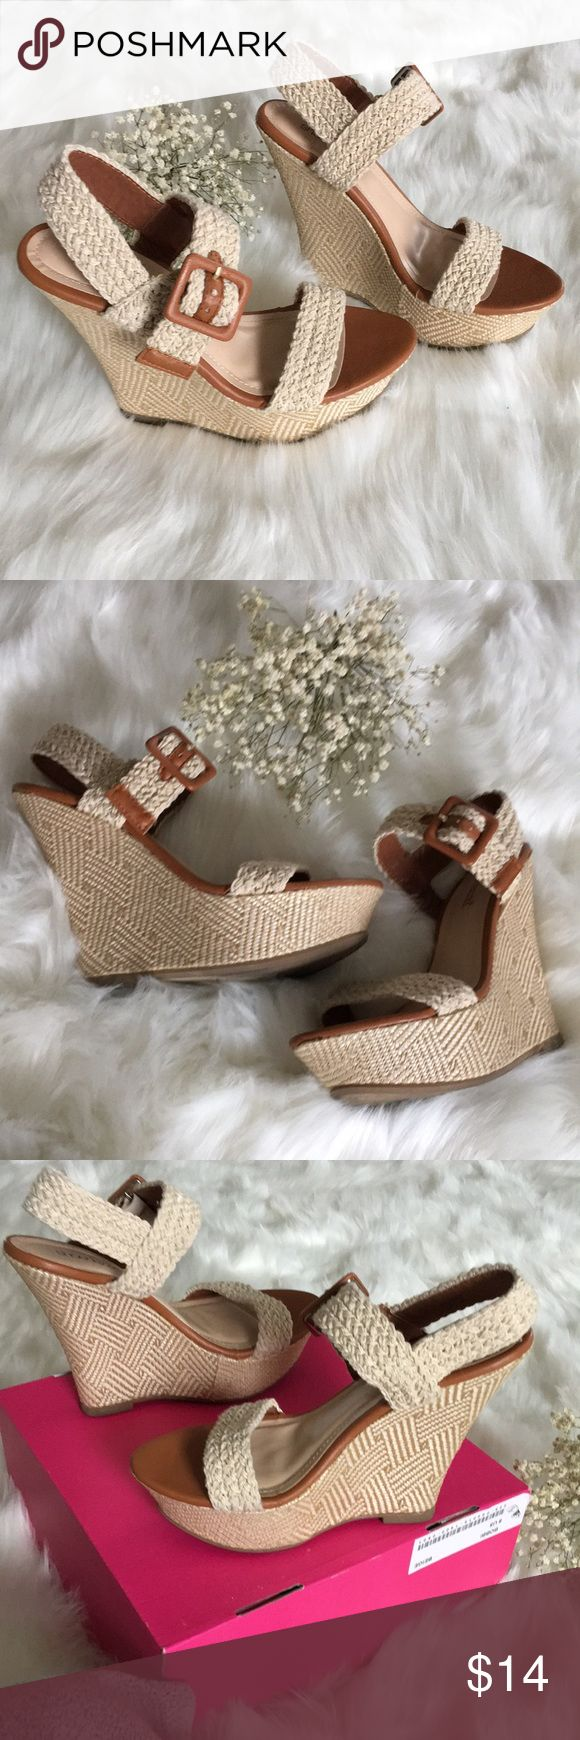 ✨Shoe Dazzle✨ BOBBI SIZE 8 ✨Show Dazzle Bobbi Size 8 Woven platform wedge heels. Worn a cpl times  - like new condition❣️ Come with box✨ They're comfortable wedges that are a work of art! They will hug your feet!  Colors are identical to pics! Shoe Dazzle Shoes Platforms